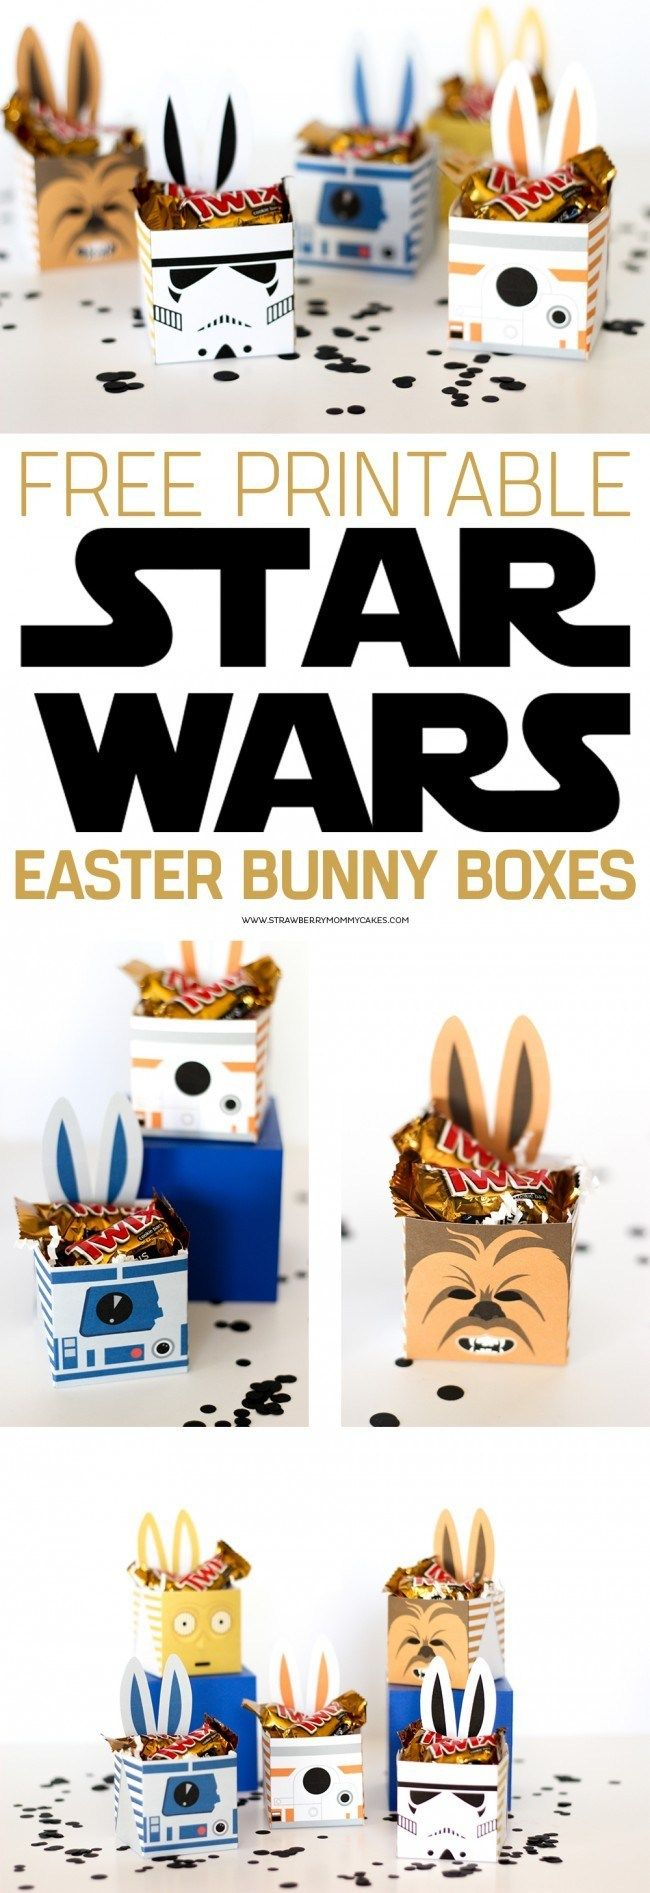 Star Wars Easter Bunny Boxes - Star wars birthday, Easter bunny, Star wars crafts, Easter crafts, Star wars gifts, Easter diy - May the Force be with you this Easter with these fun Star Wars Easter Bunny Boxes! My kids will go nuts over these fun printables!